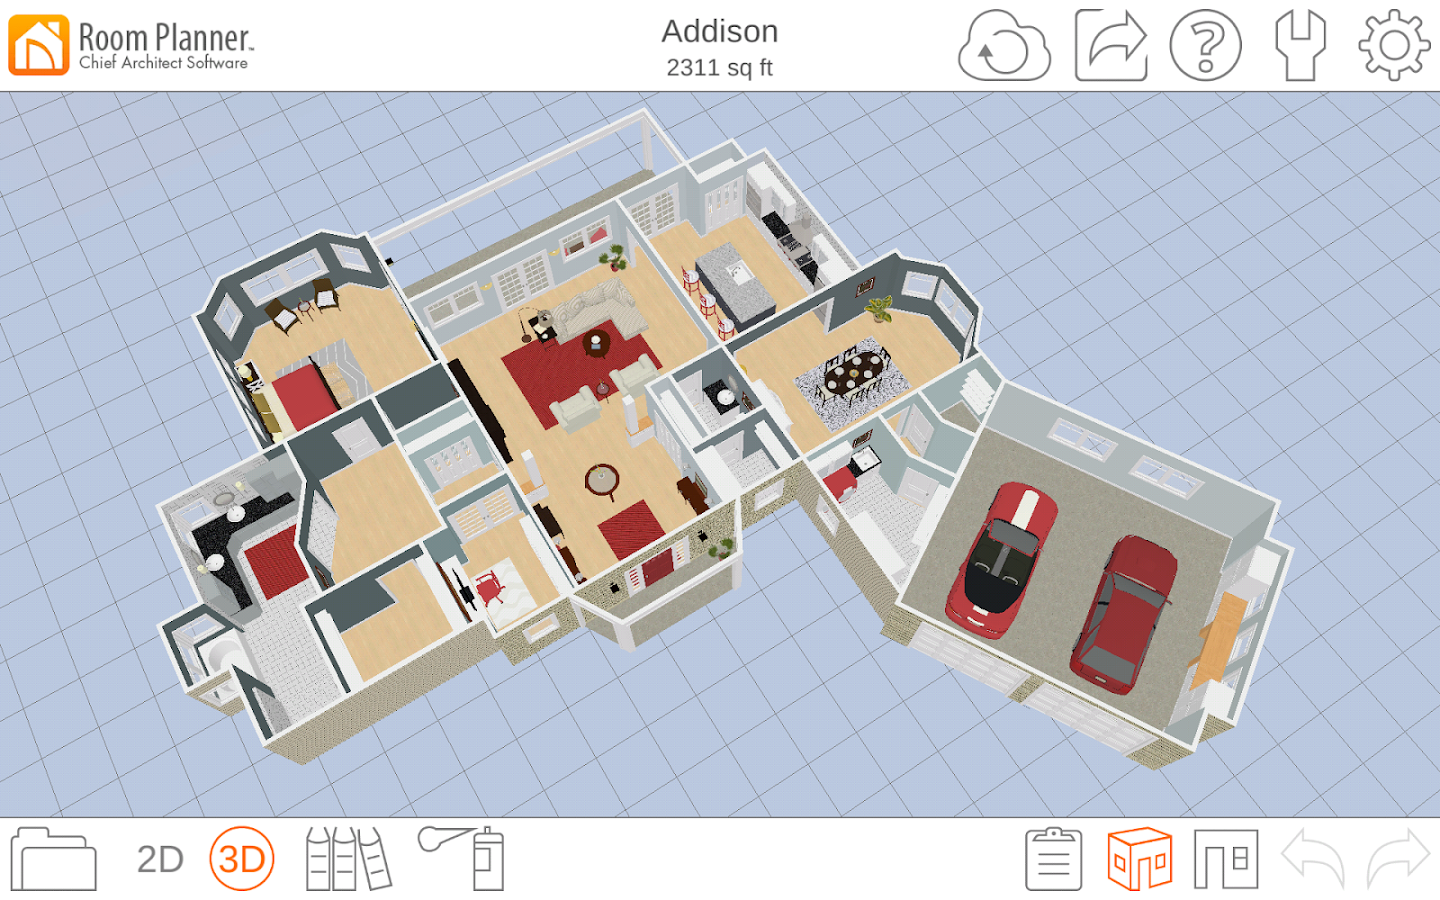 Room planner home design android apps on google play Floor plan 3d download